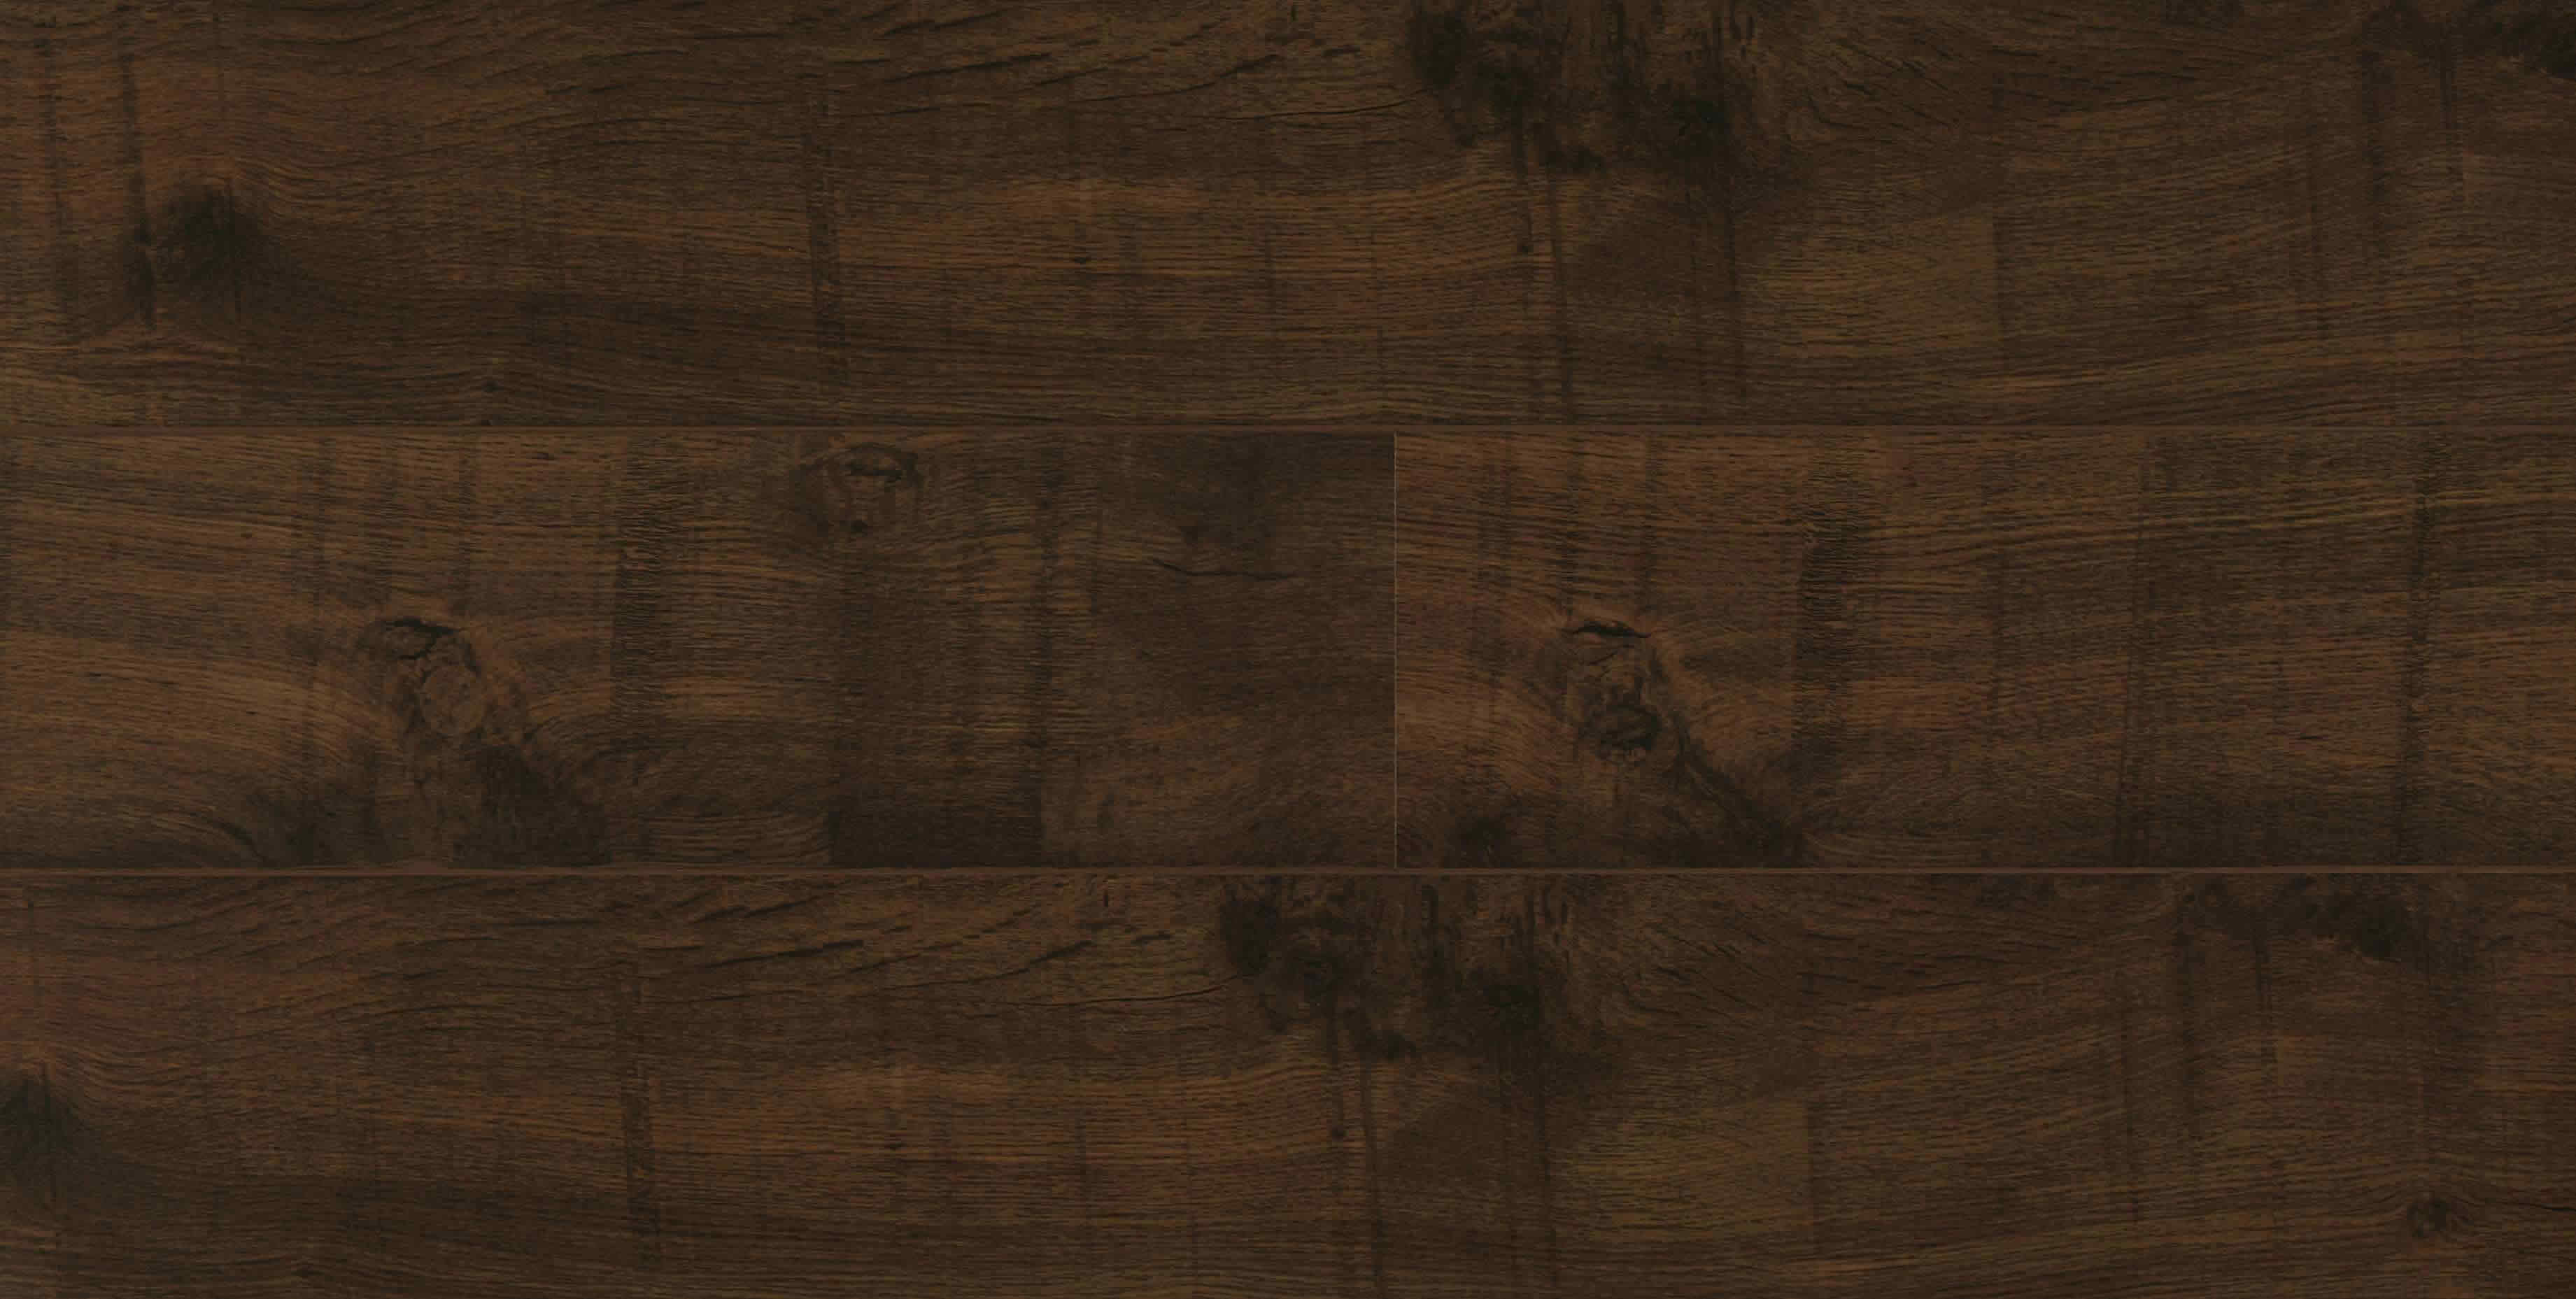 Wood Background Texture Wooden Tiles Free Image